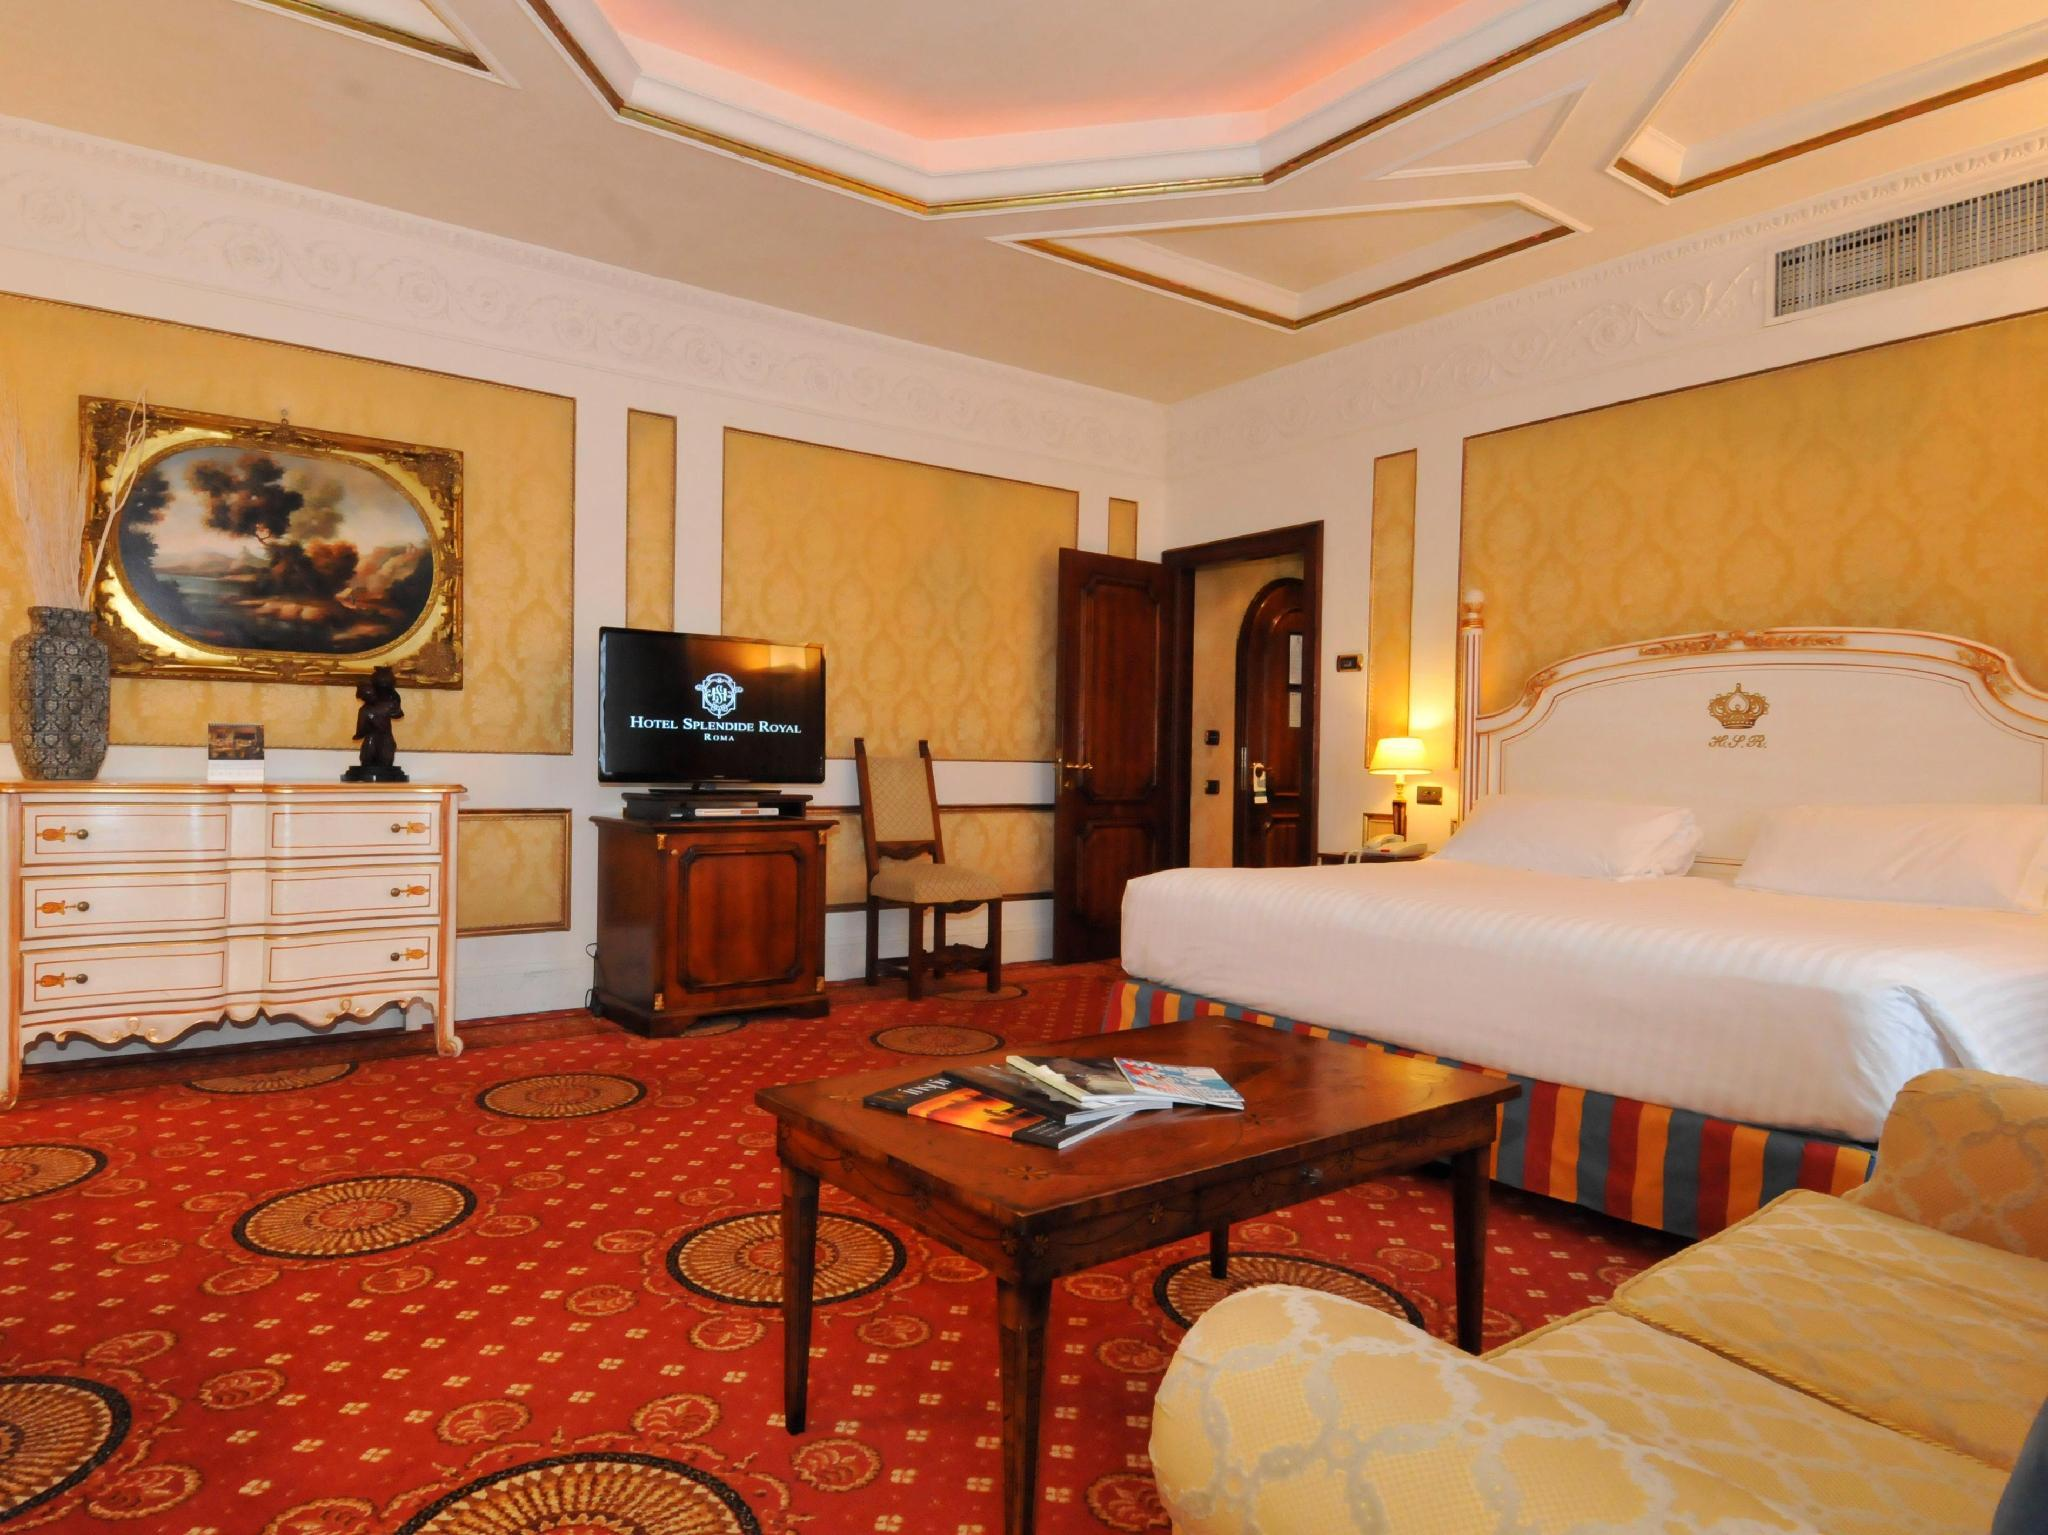 Hotel Splendide Royal Small Luxury Hotels Of The World In Rome